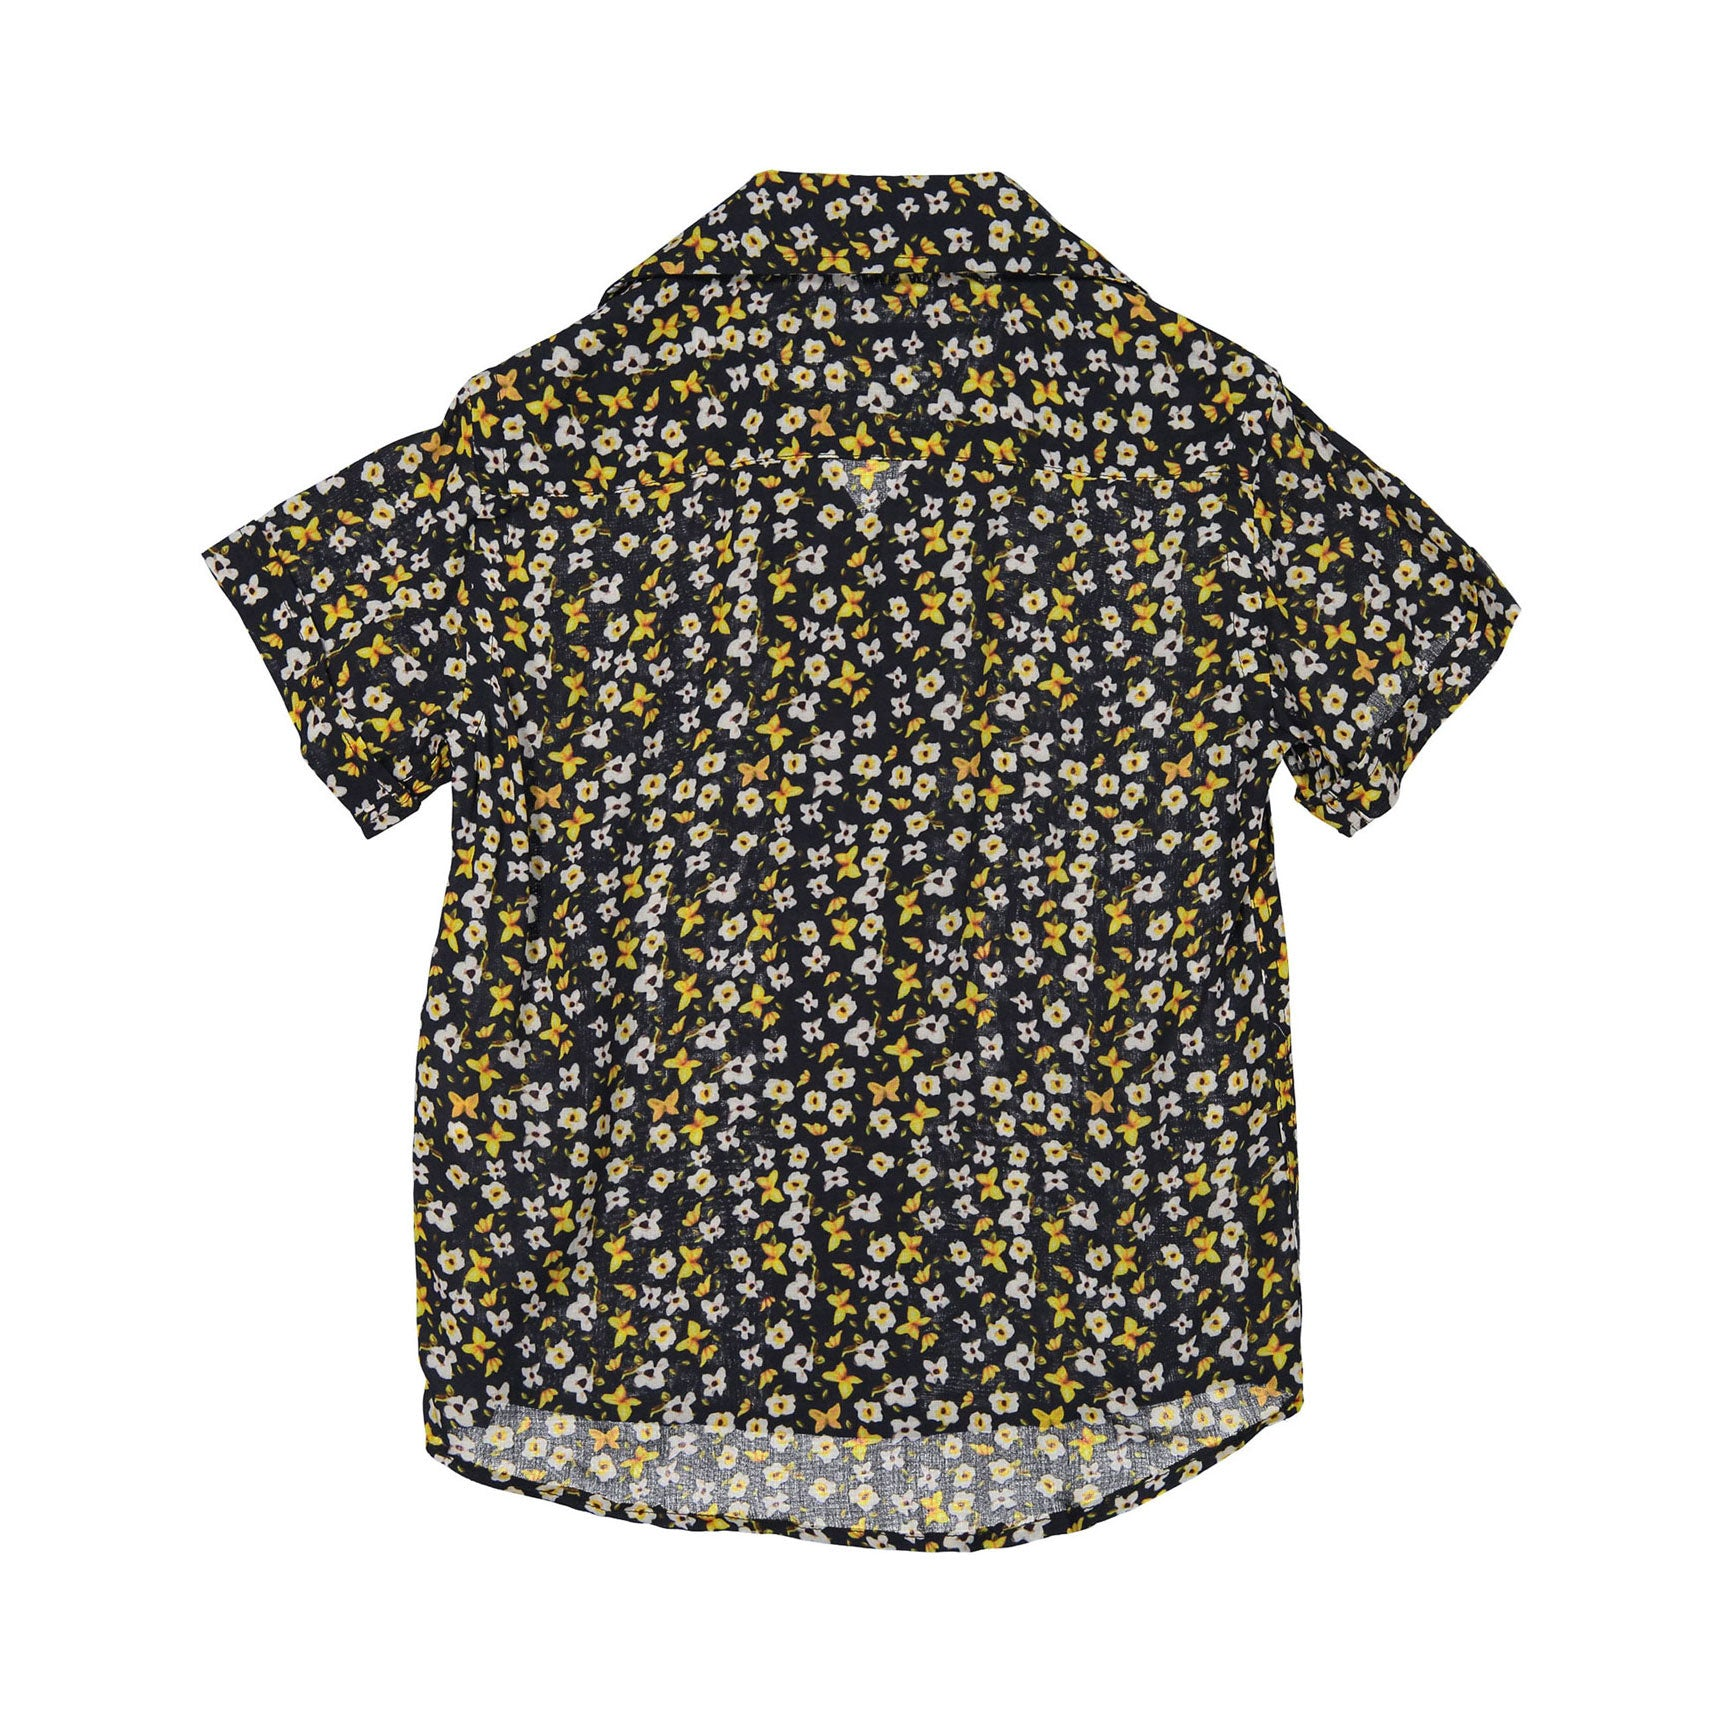 Nupkeet Navy Floral Short Sleeve Shirt